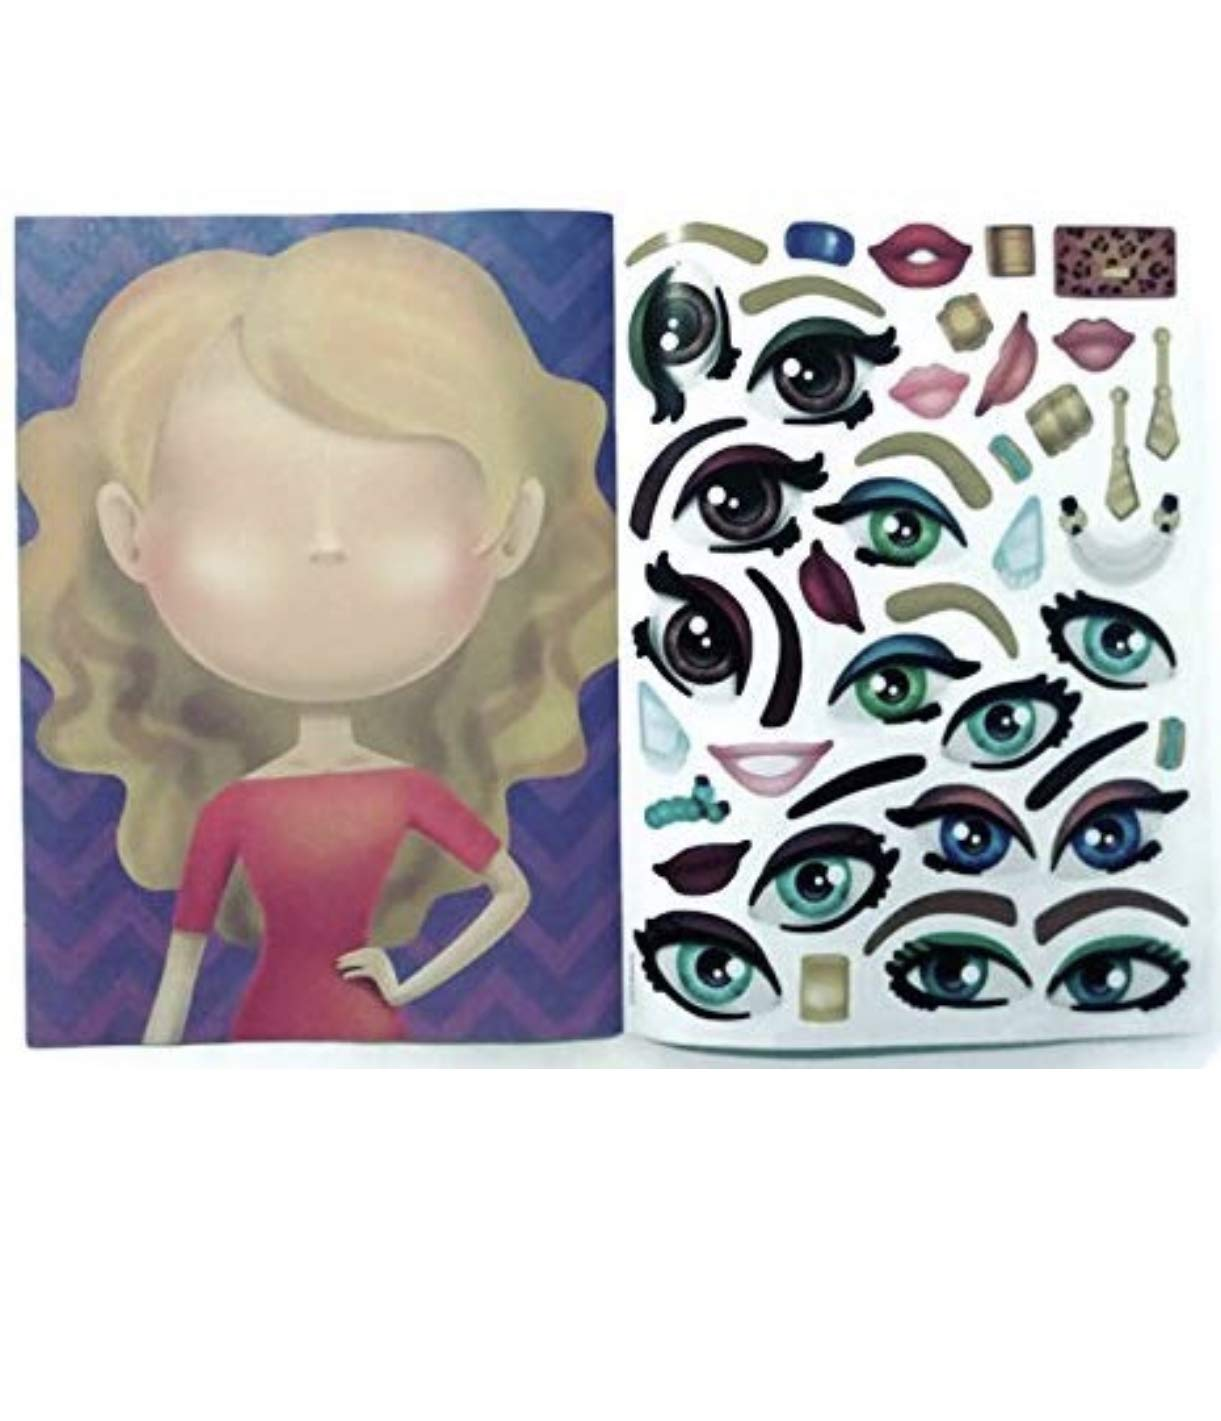 PROSPERITY DEVINE Silly SEA PALS and Fashion Diva Sticker FACE Activity Books for Kids Teens and Adults 2 Books